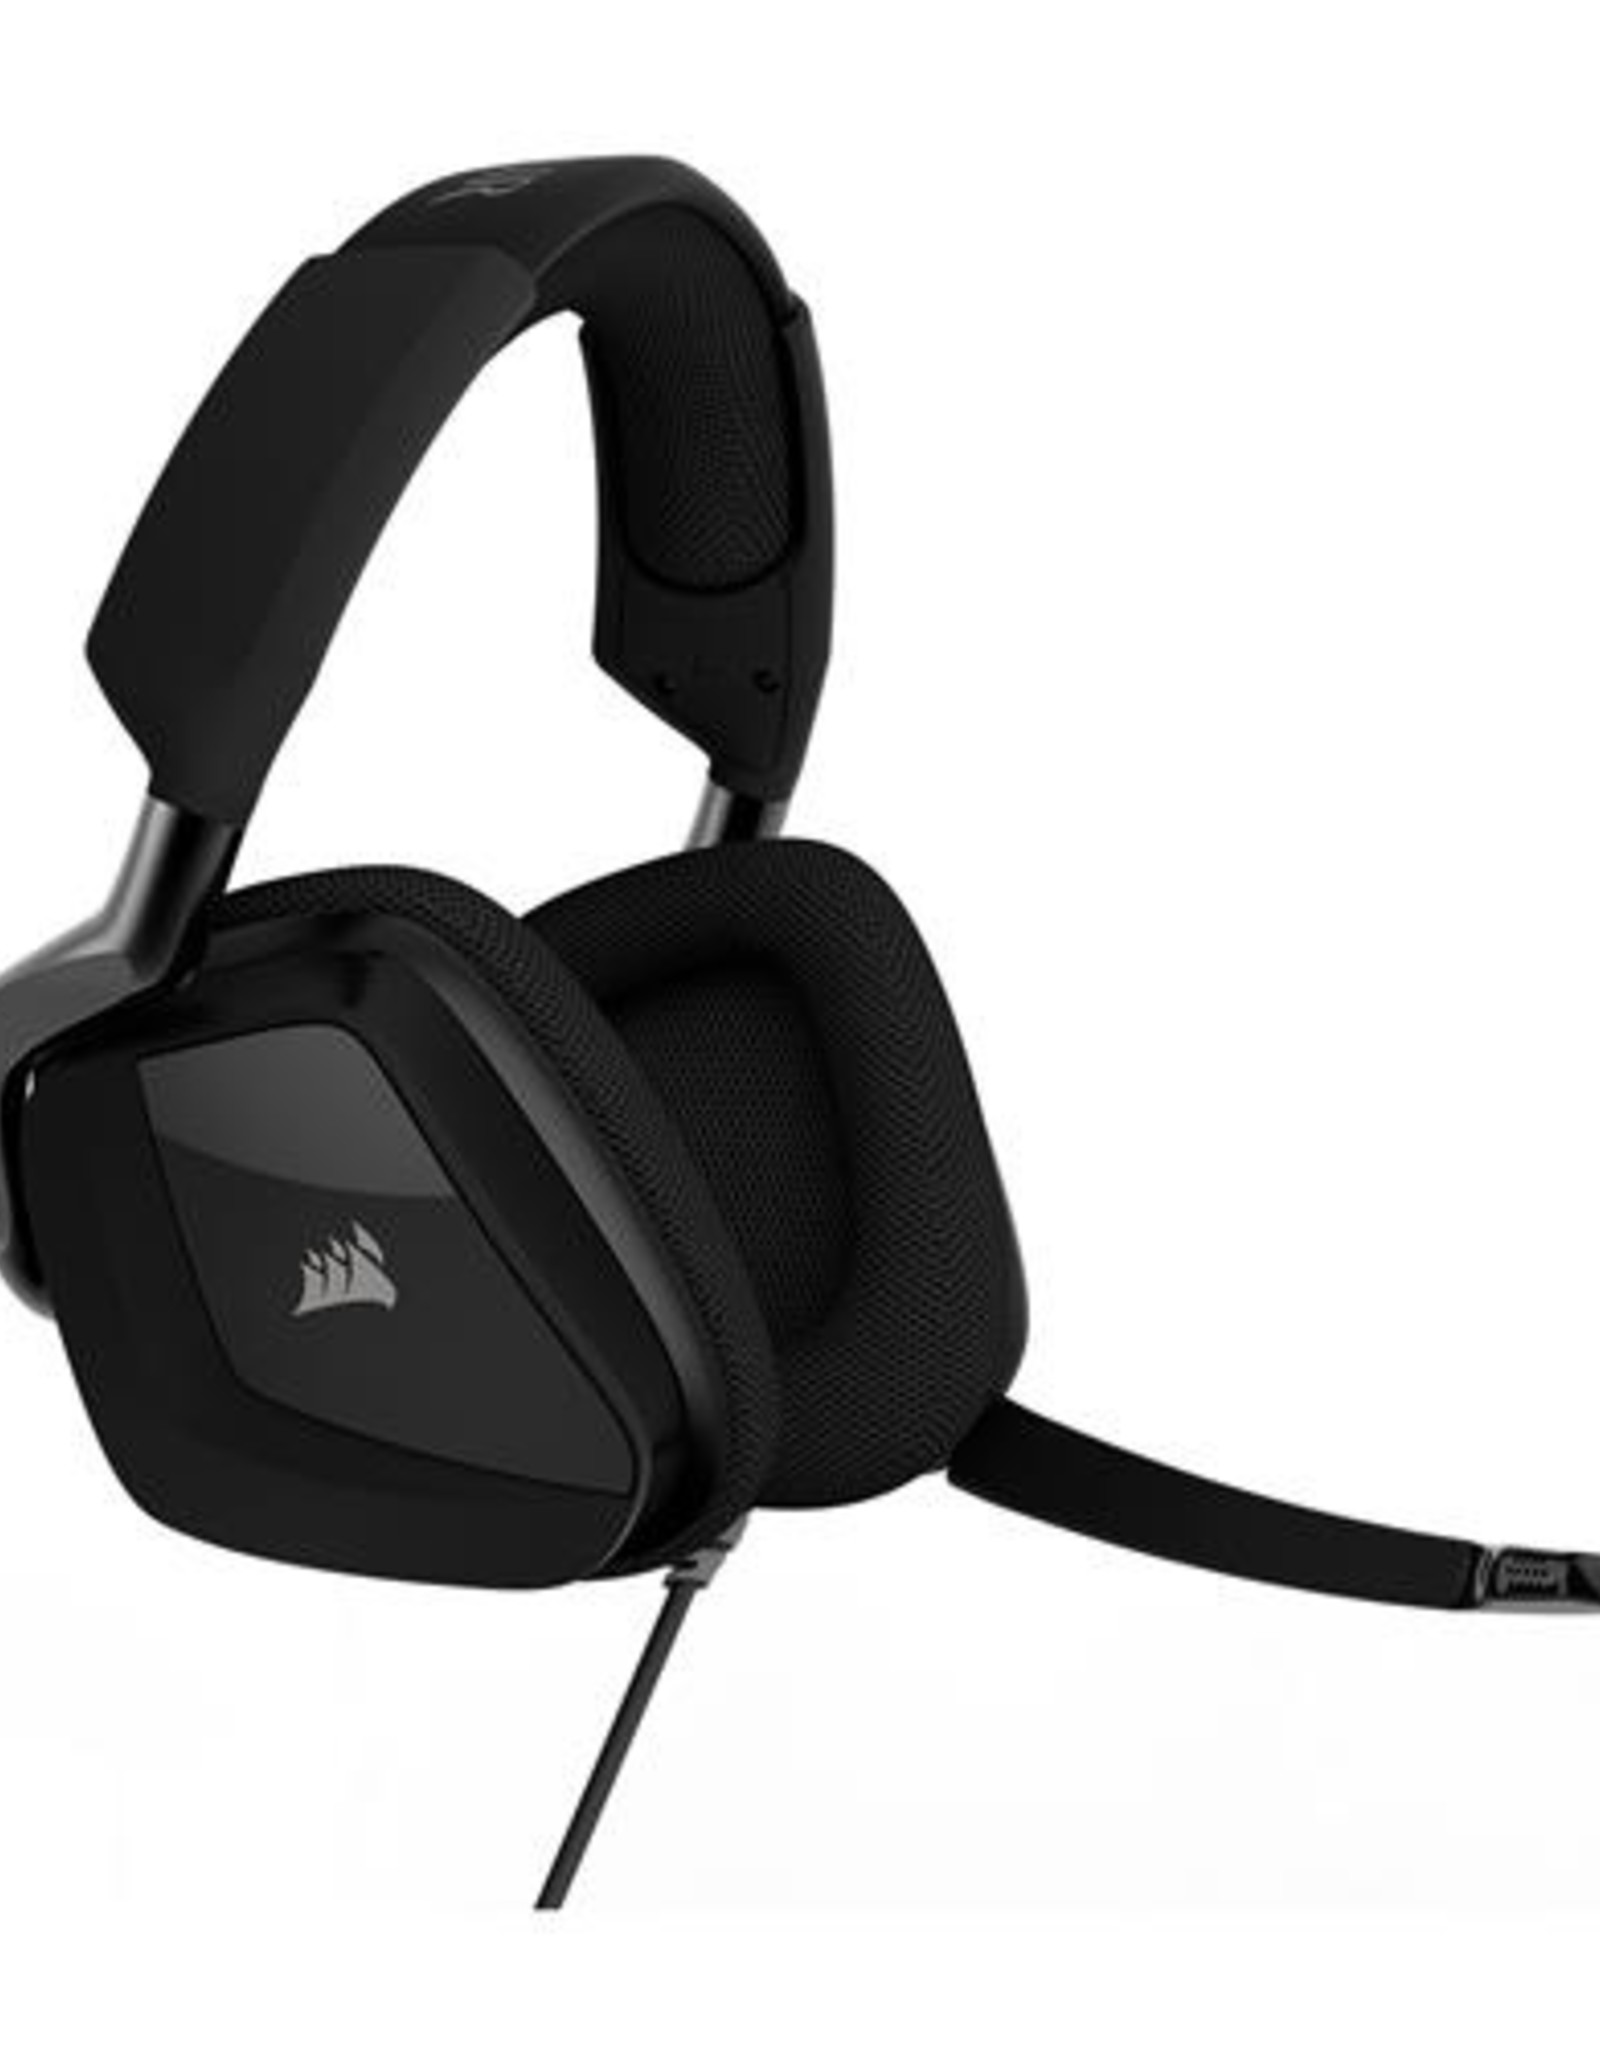 Corsair Corsair Gaming VOID PRO Surround Premium Gaming Headset with Dolby Headphone 7.1, Carbon Black (NA Version) CA-9011156-NA